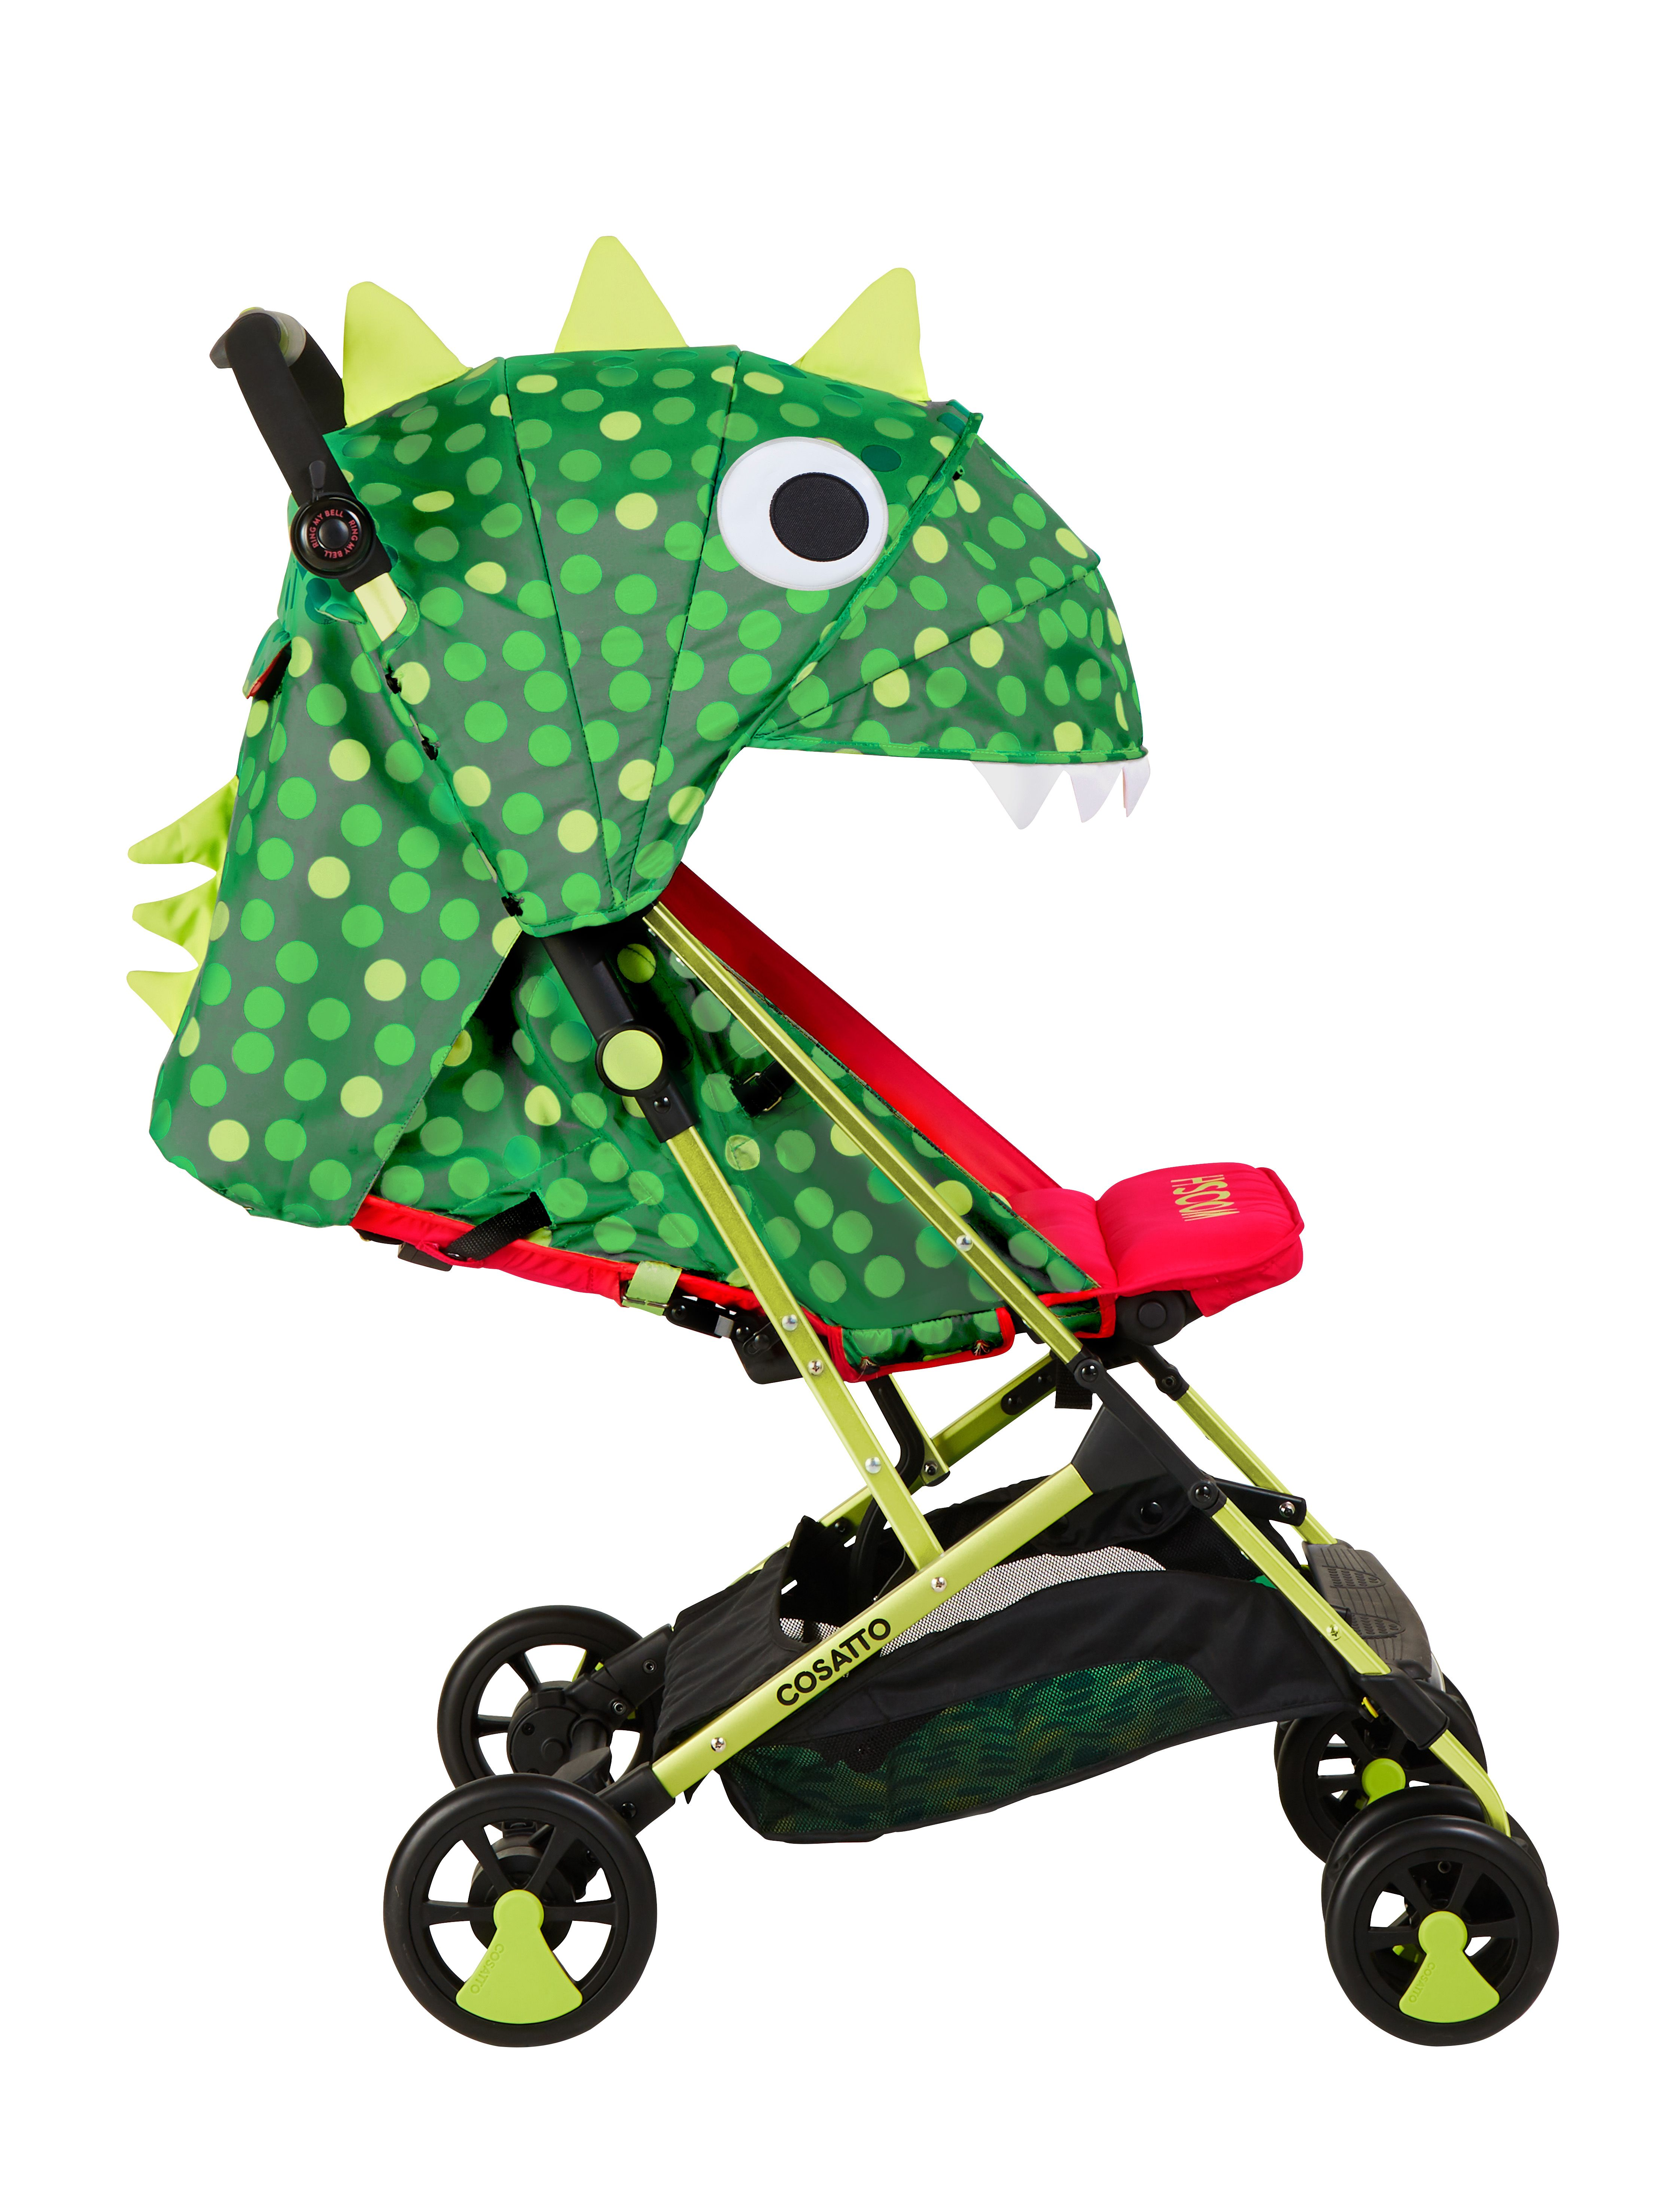 Suitable from Birth to 25 kg Cosatto Supa 2018 Baby Stroller Dino Mighty